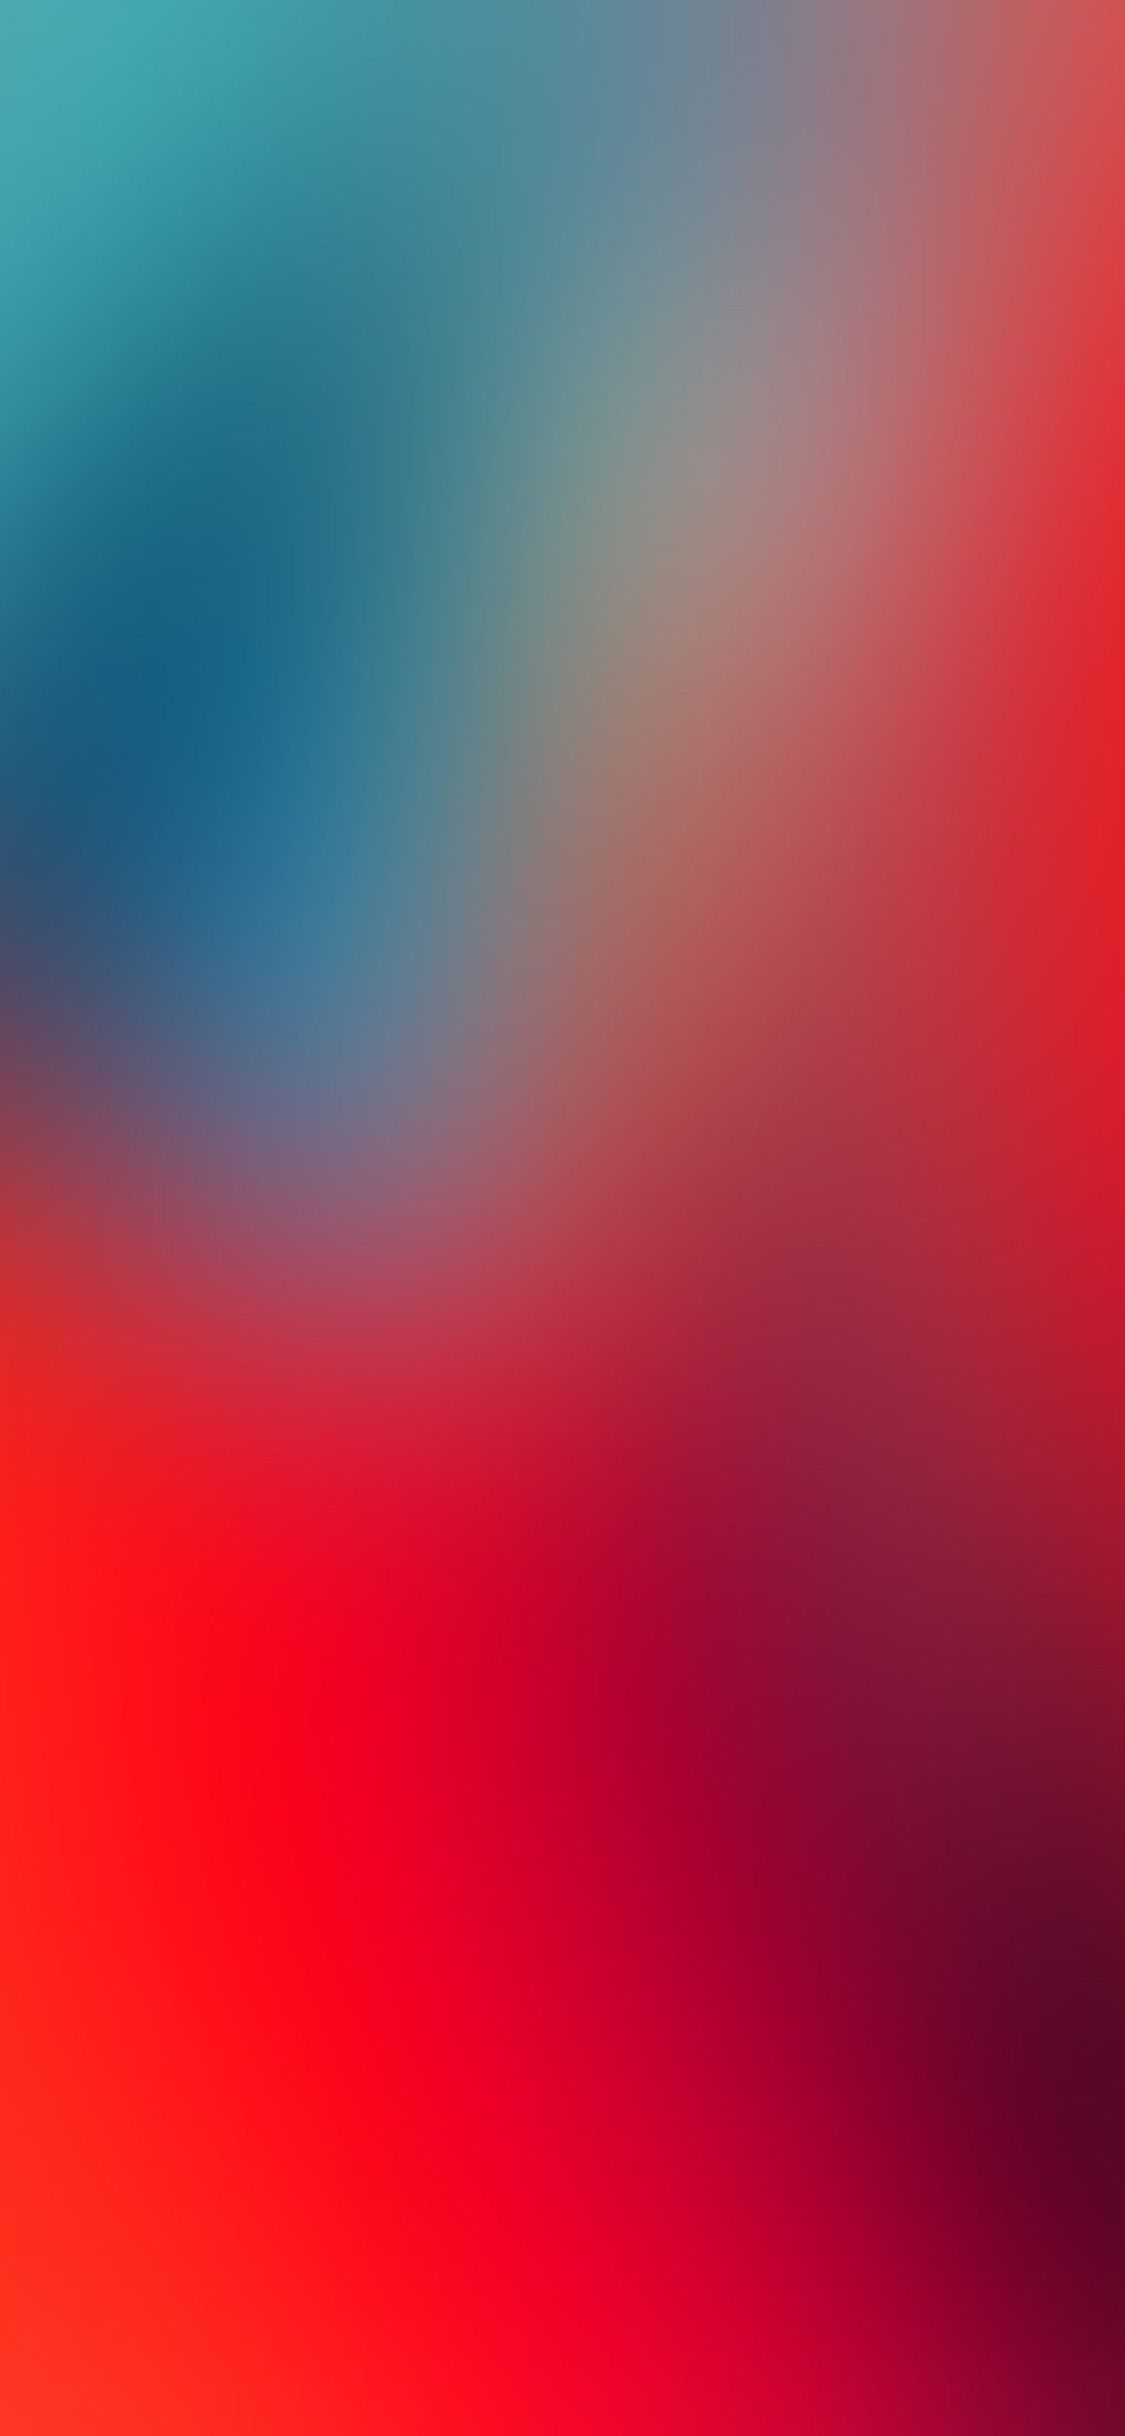 Iphone Xr Wallpaper 4k Red Mywallpapers Site Iphone Red Wallpaper Apple Wallpaper Iphone Color Wallpaper Iphone